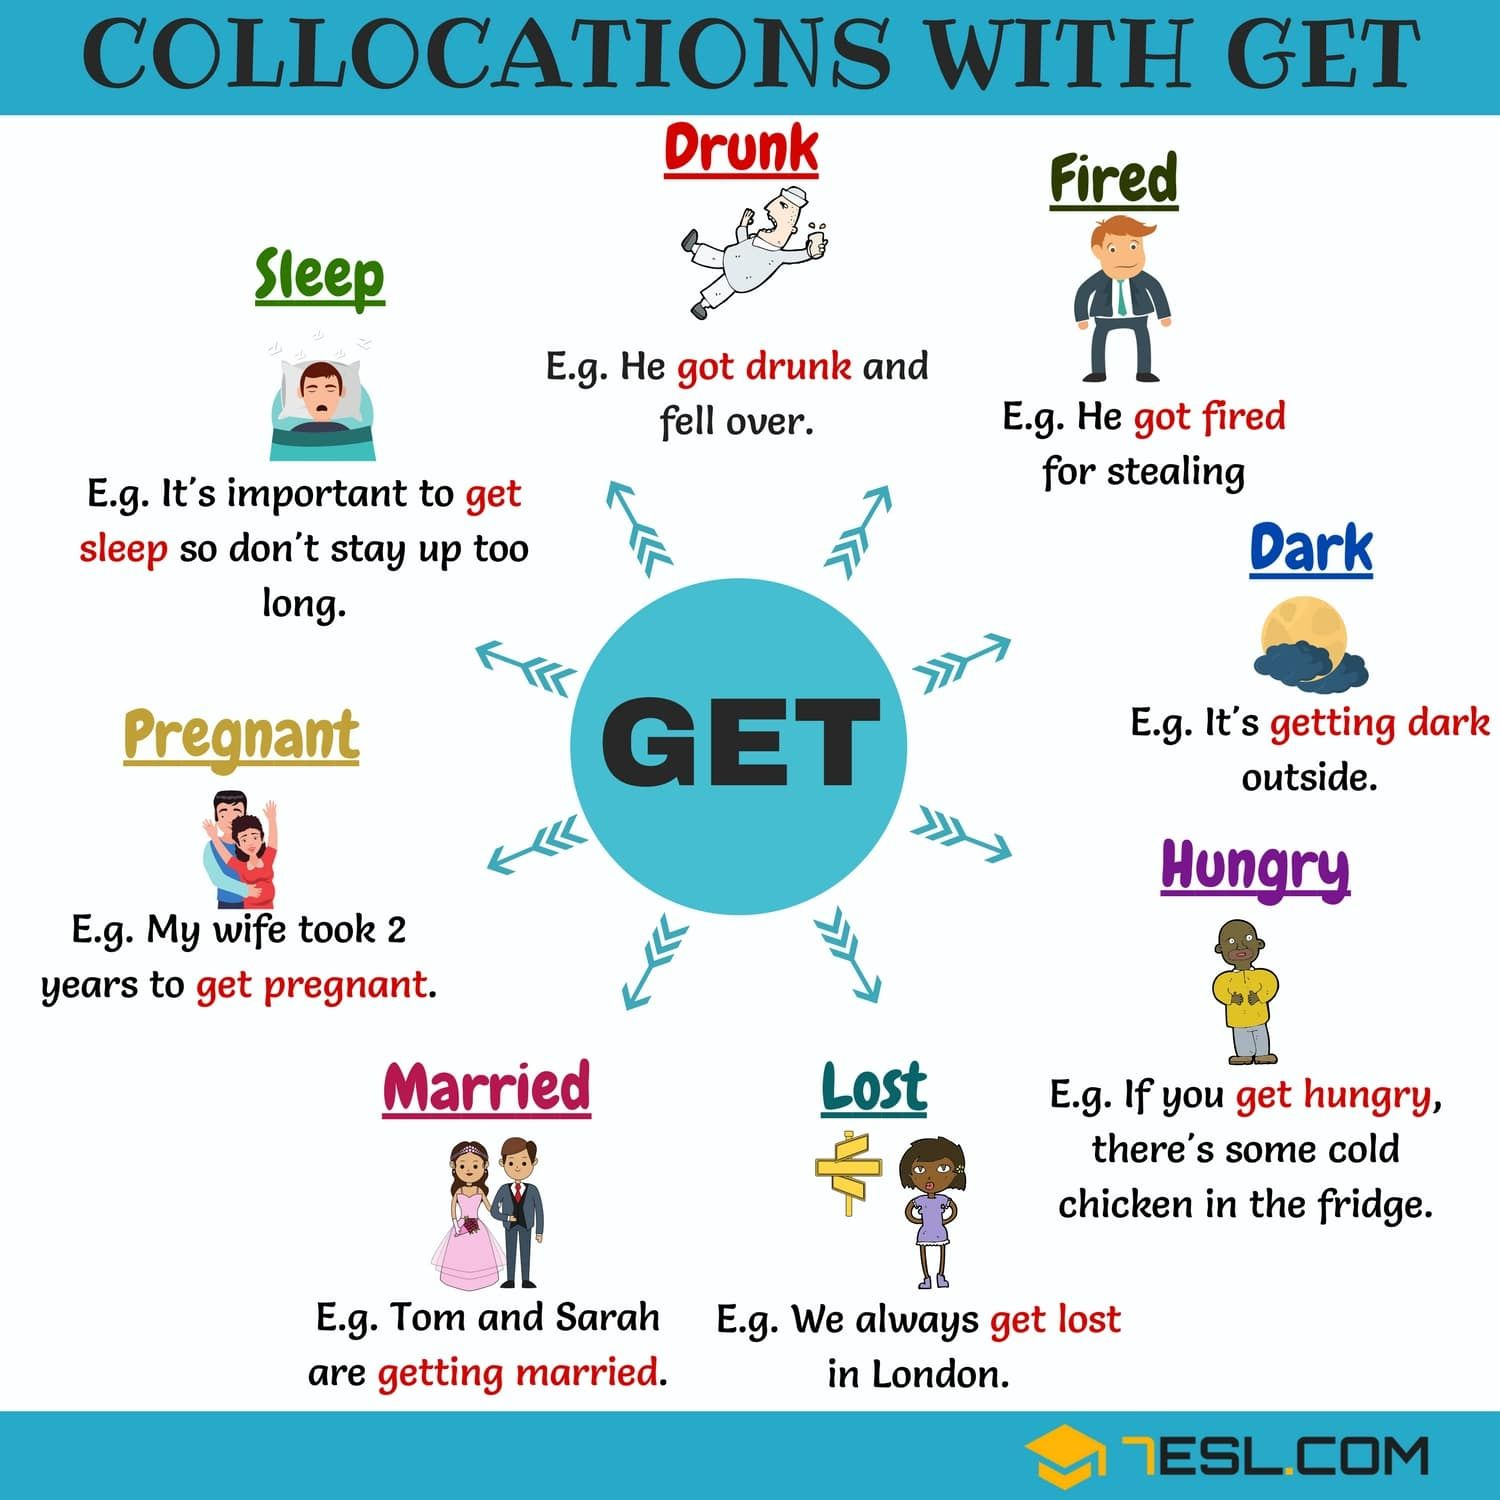 48 Useful Collocations With Get With Examples